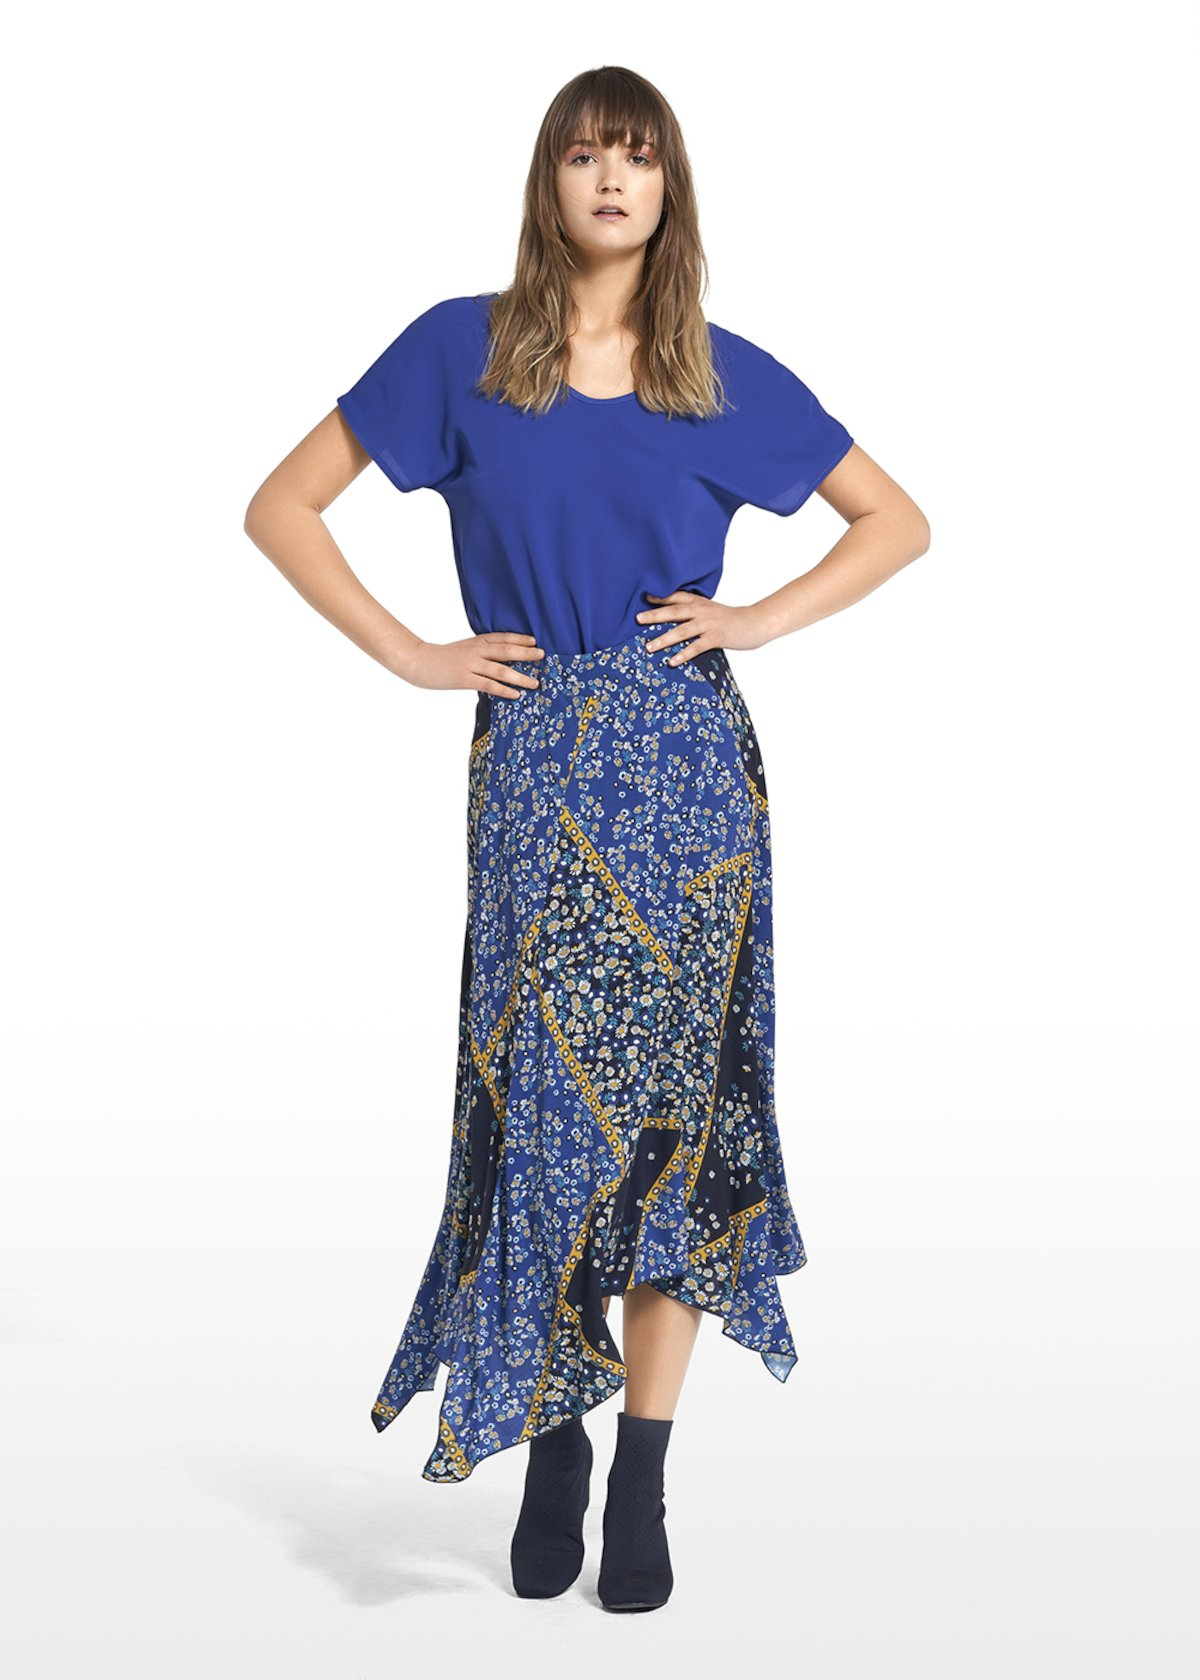 Skirt Glory with asymmetric cut - Avion / Miele Fantasia - Woman - Category image